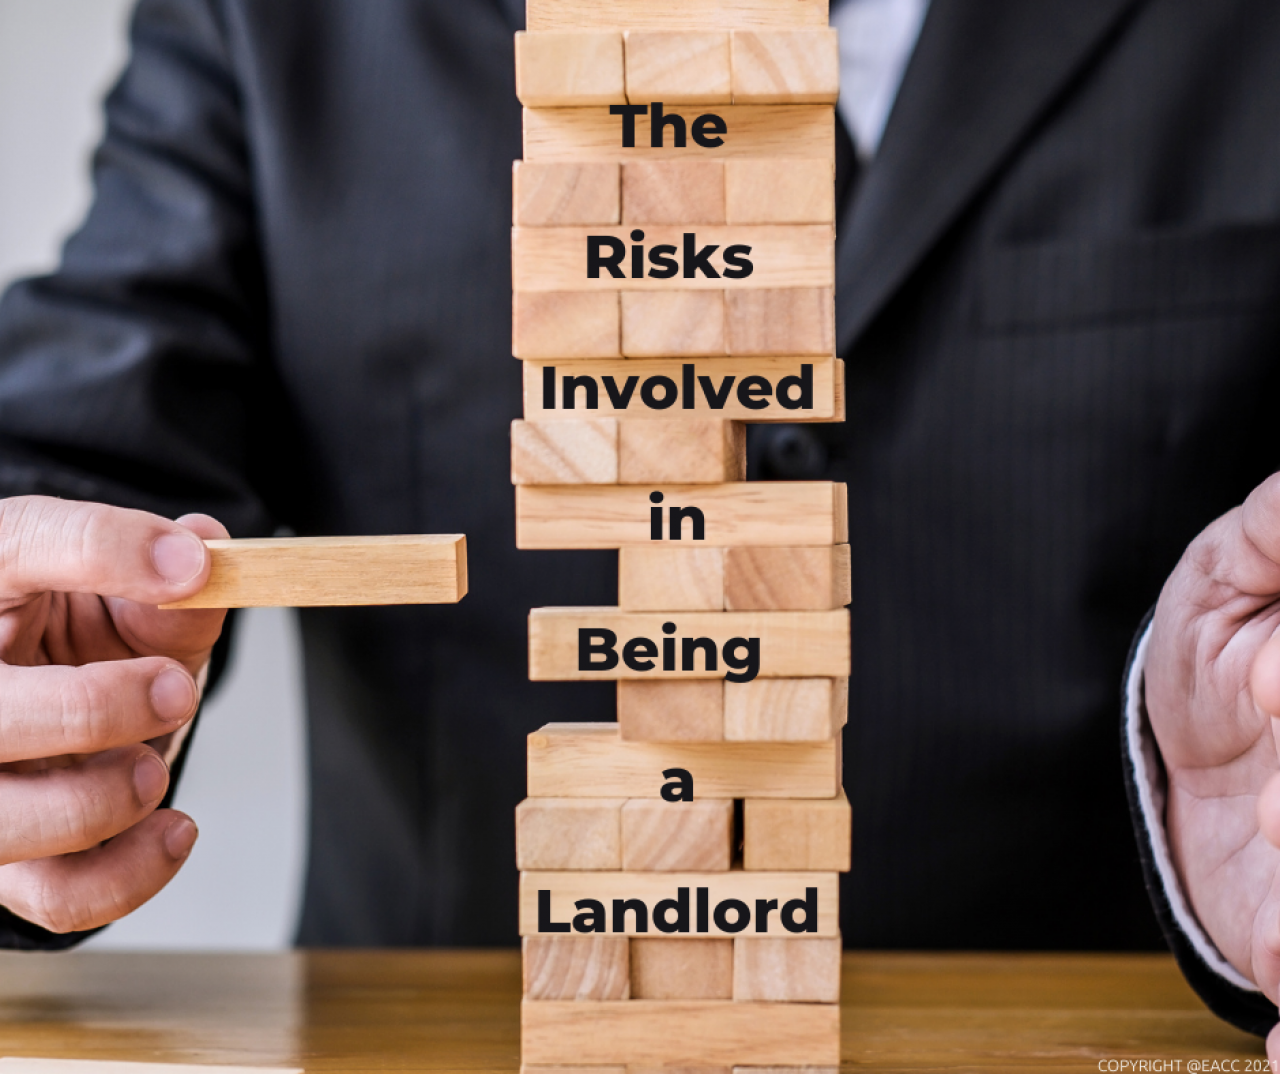 >The Risks Involved in Being a Sidcup Landlord